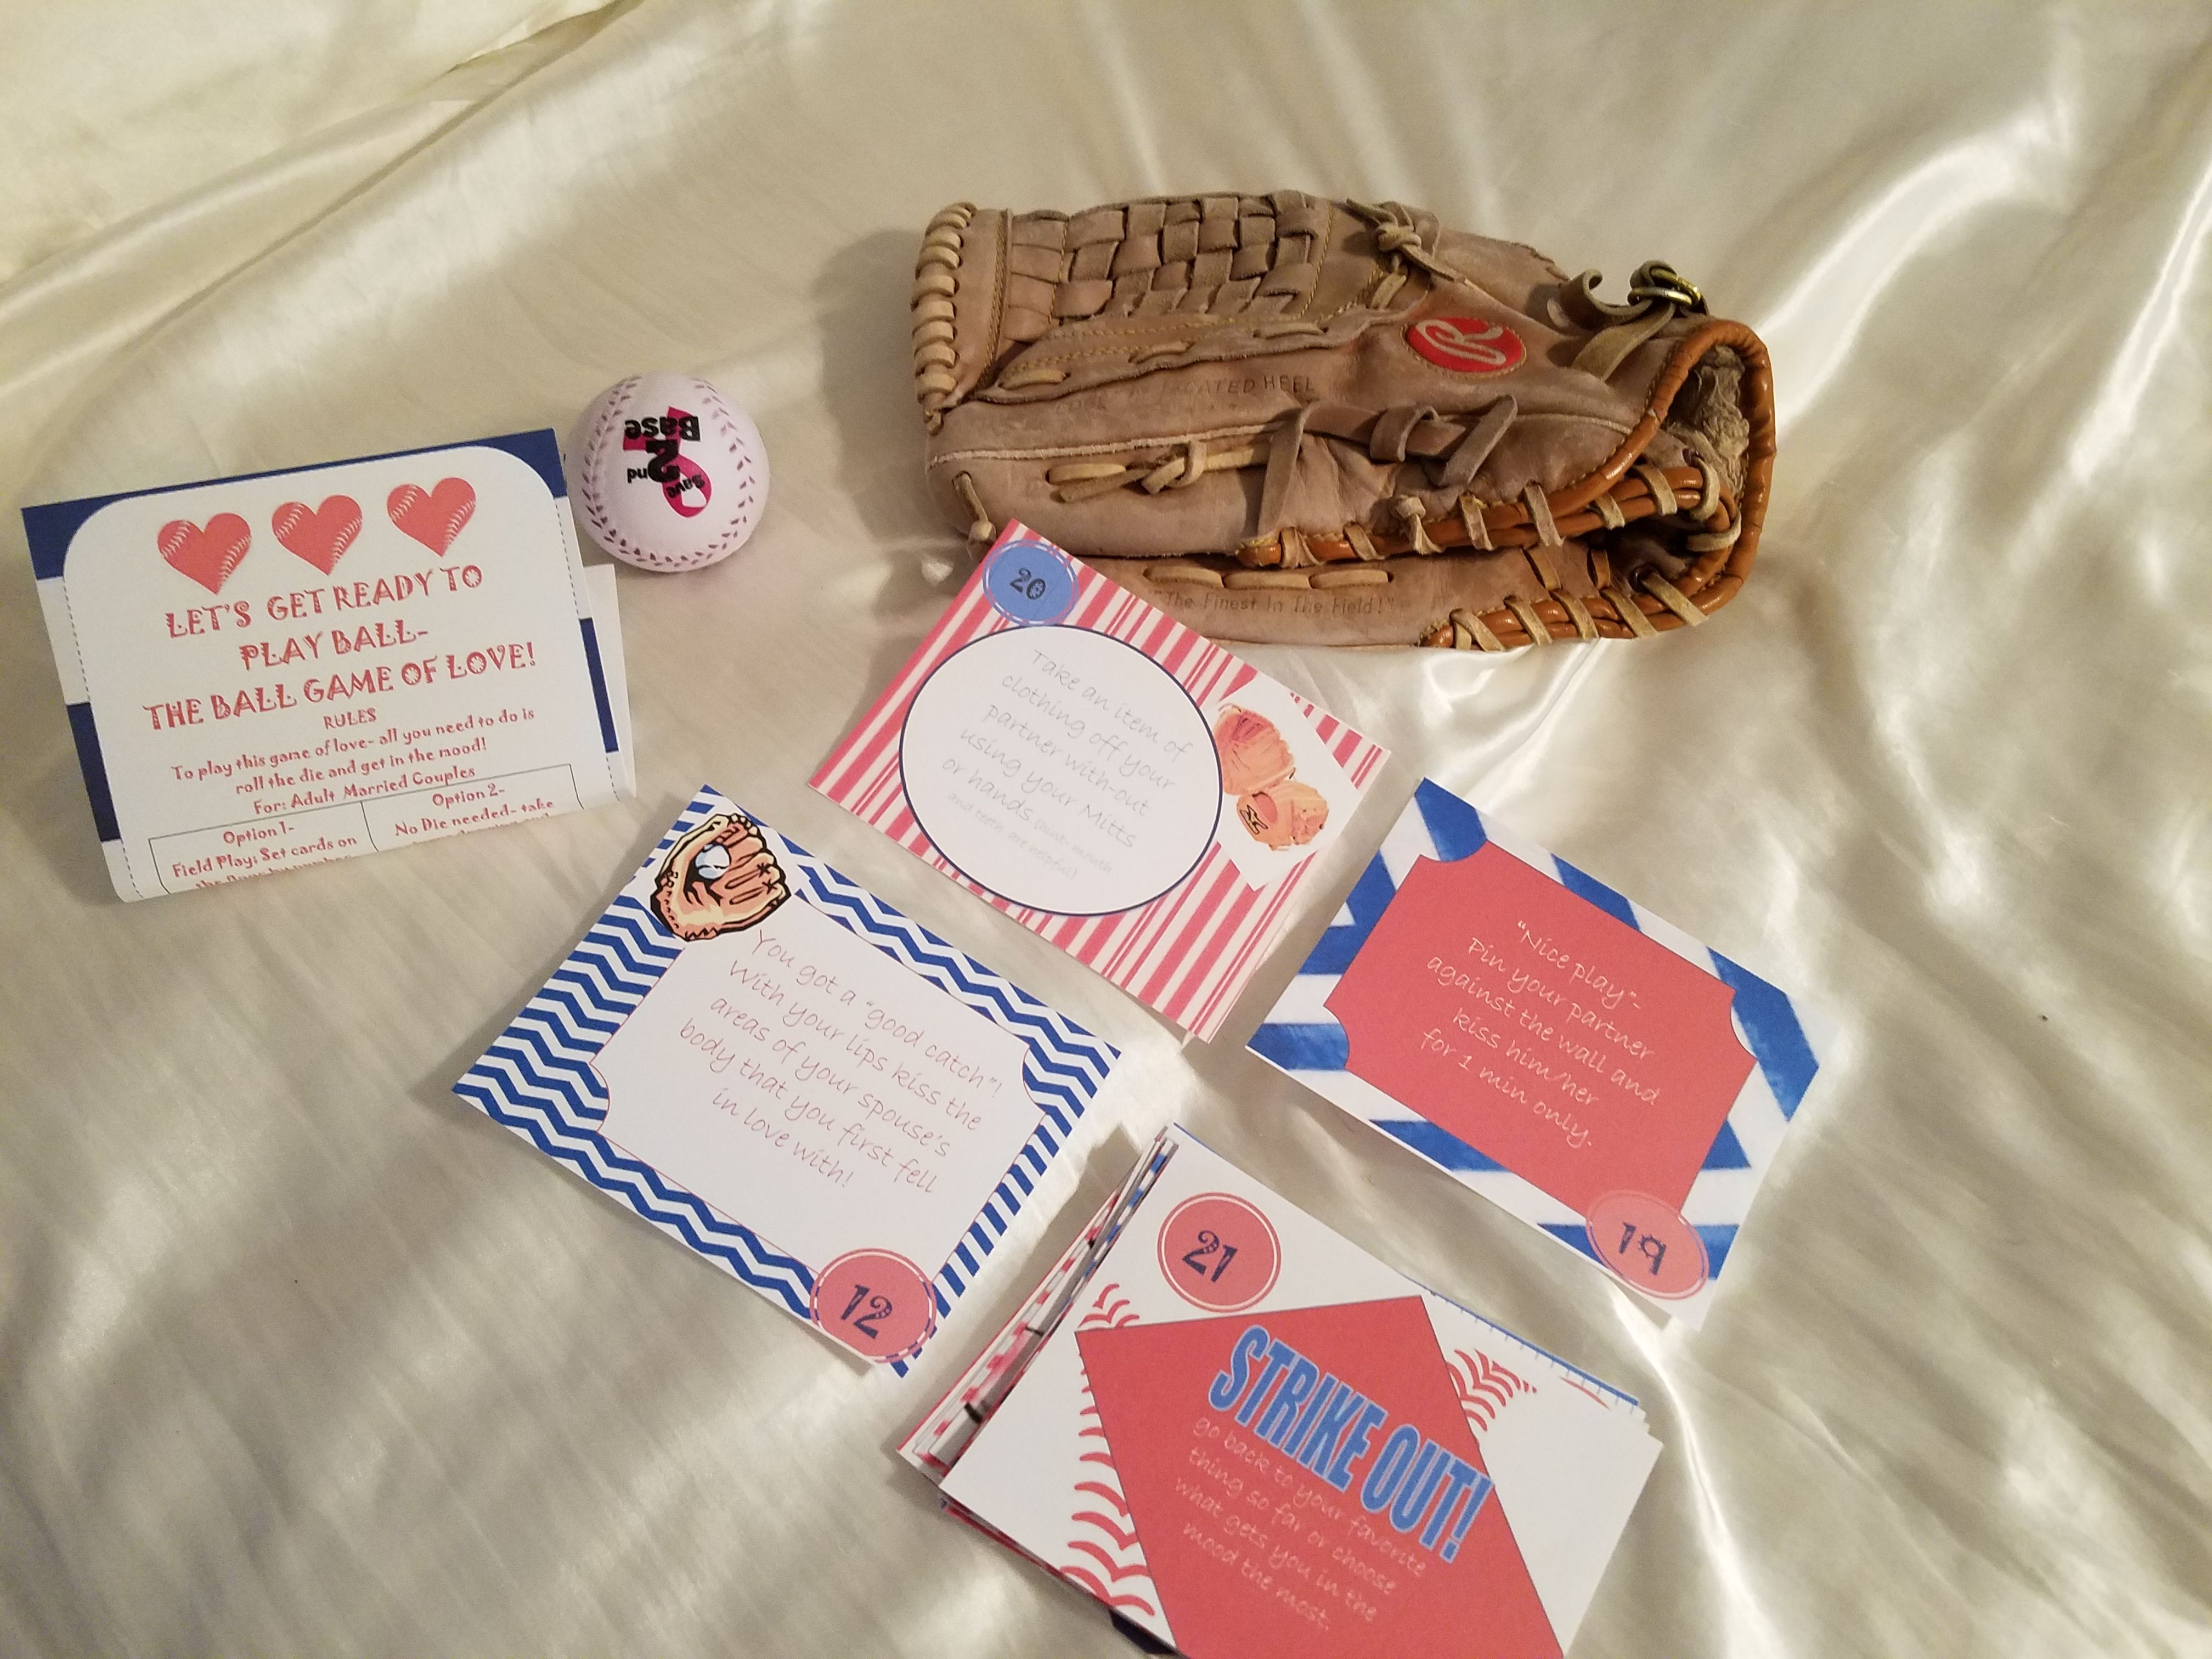 This Bedroom Baseball Game Of Love Is Seriously Out The Park It